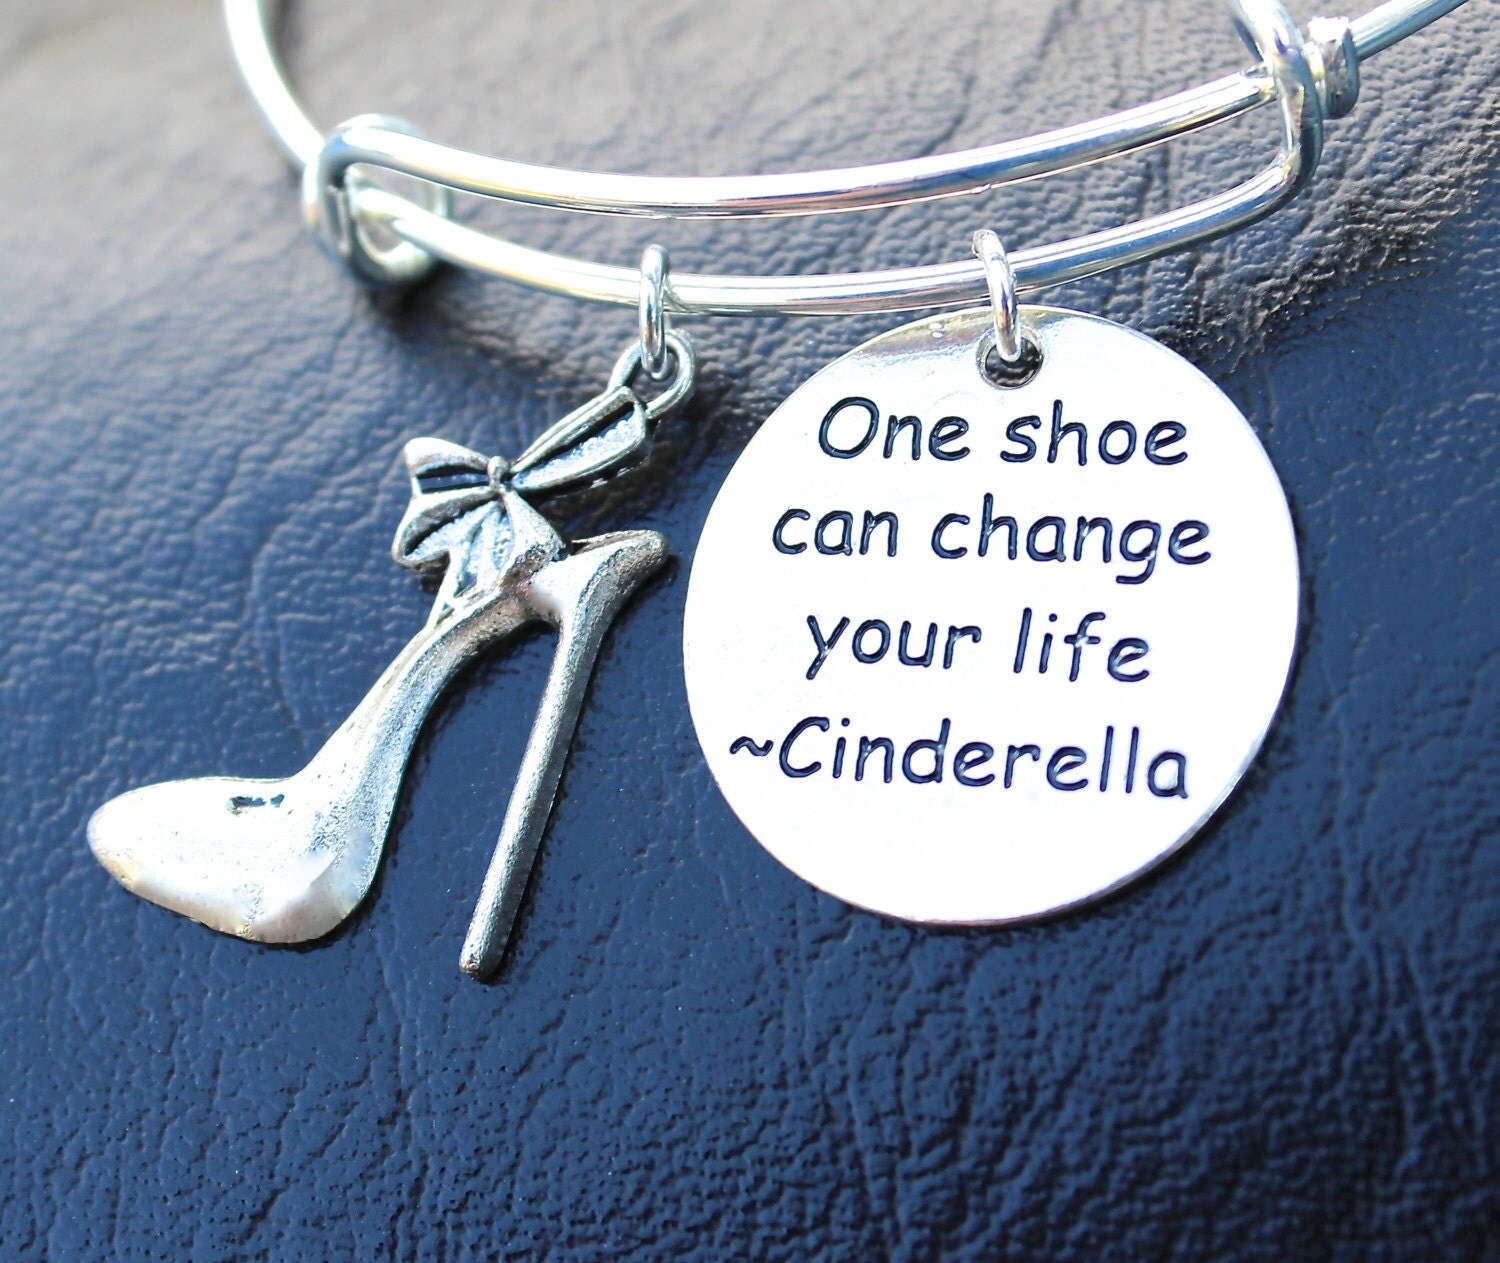 Uncommon Quotes That Can Change Your Life: Quote Charm One Shoe Can Change Your Life .Cinderella